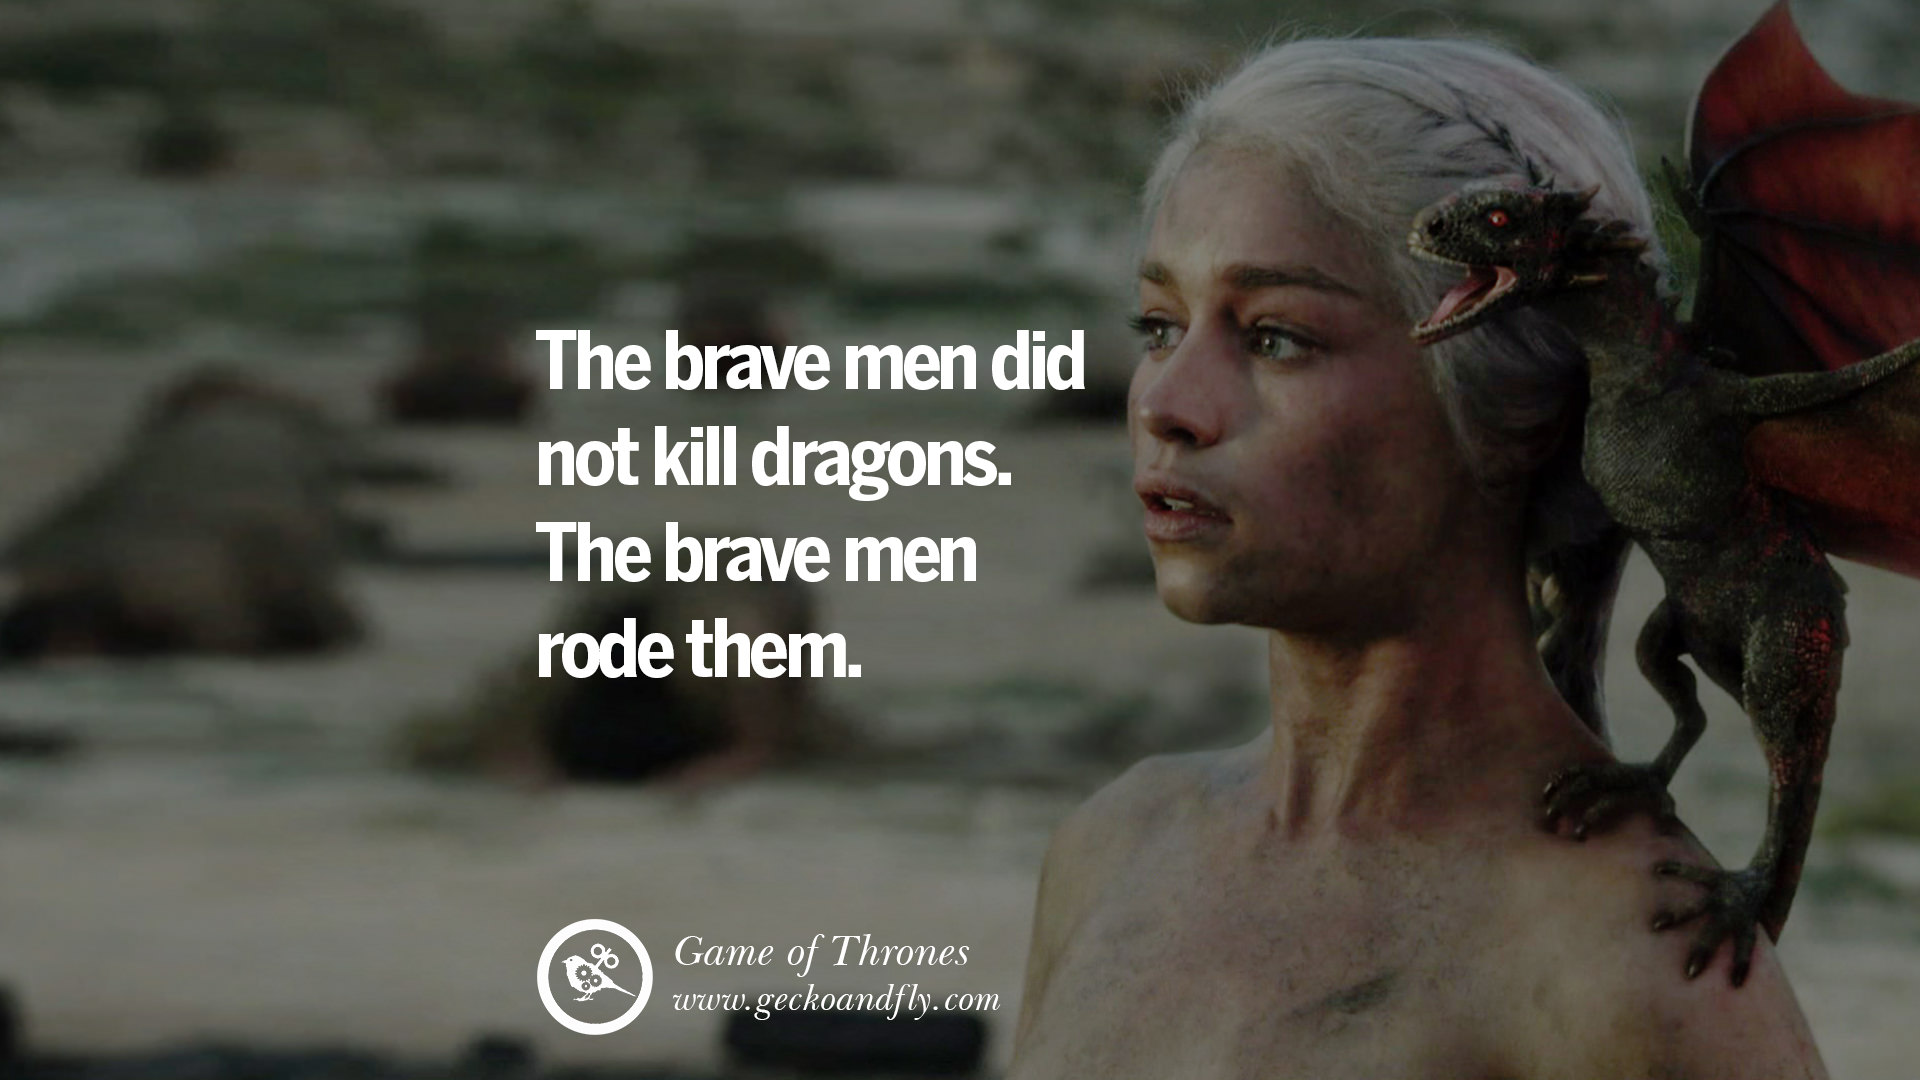 Death And Love Quotes 15 Memorable Game Of Thrones Quotesgeorge Martin On Love